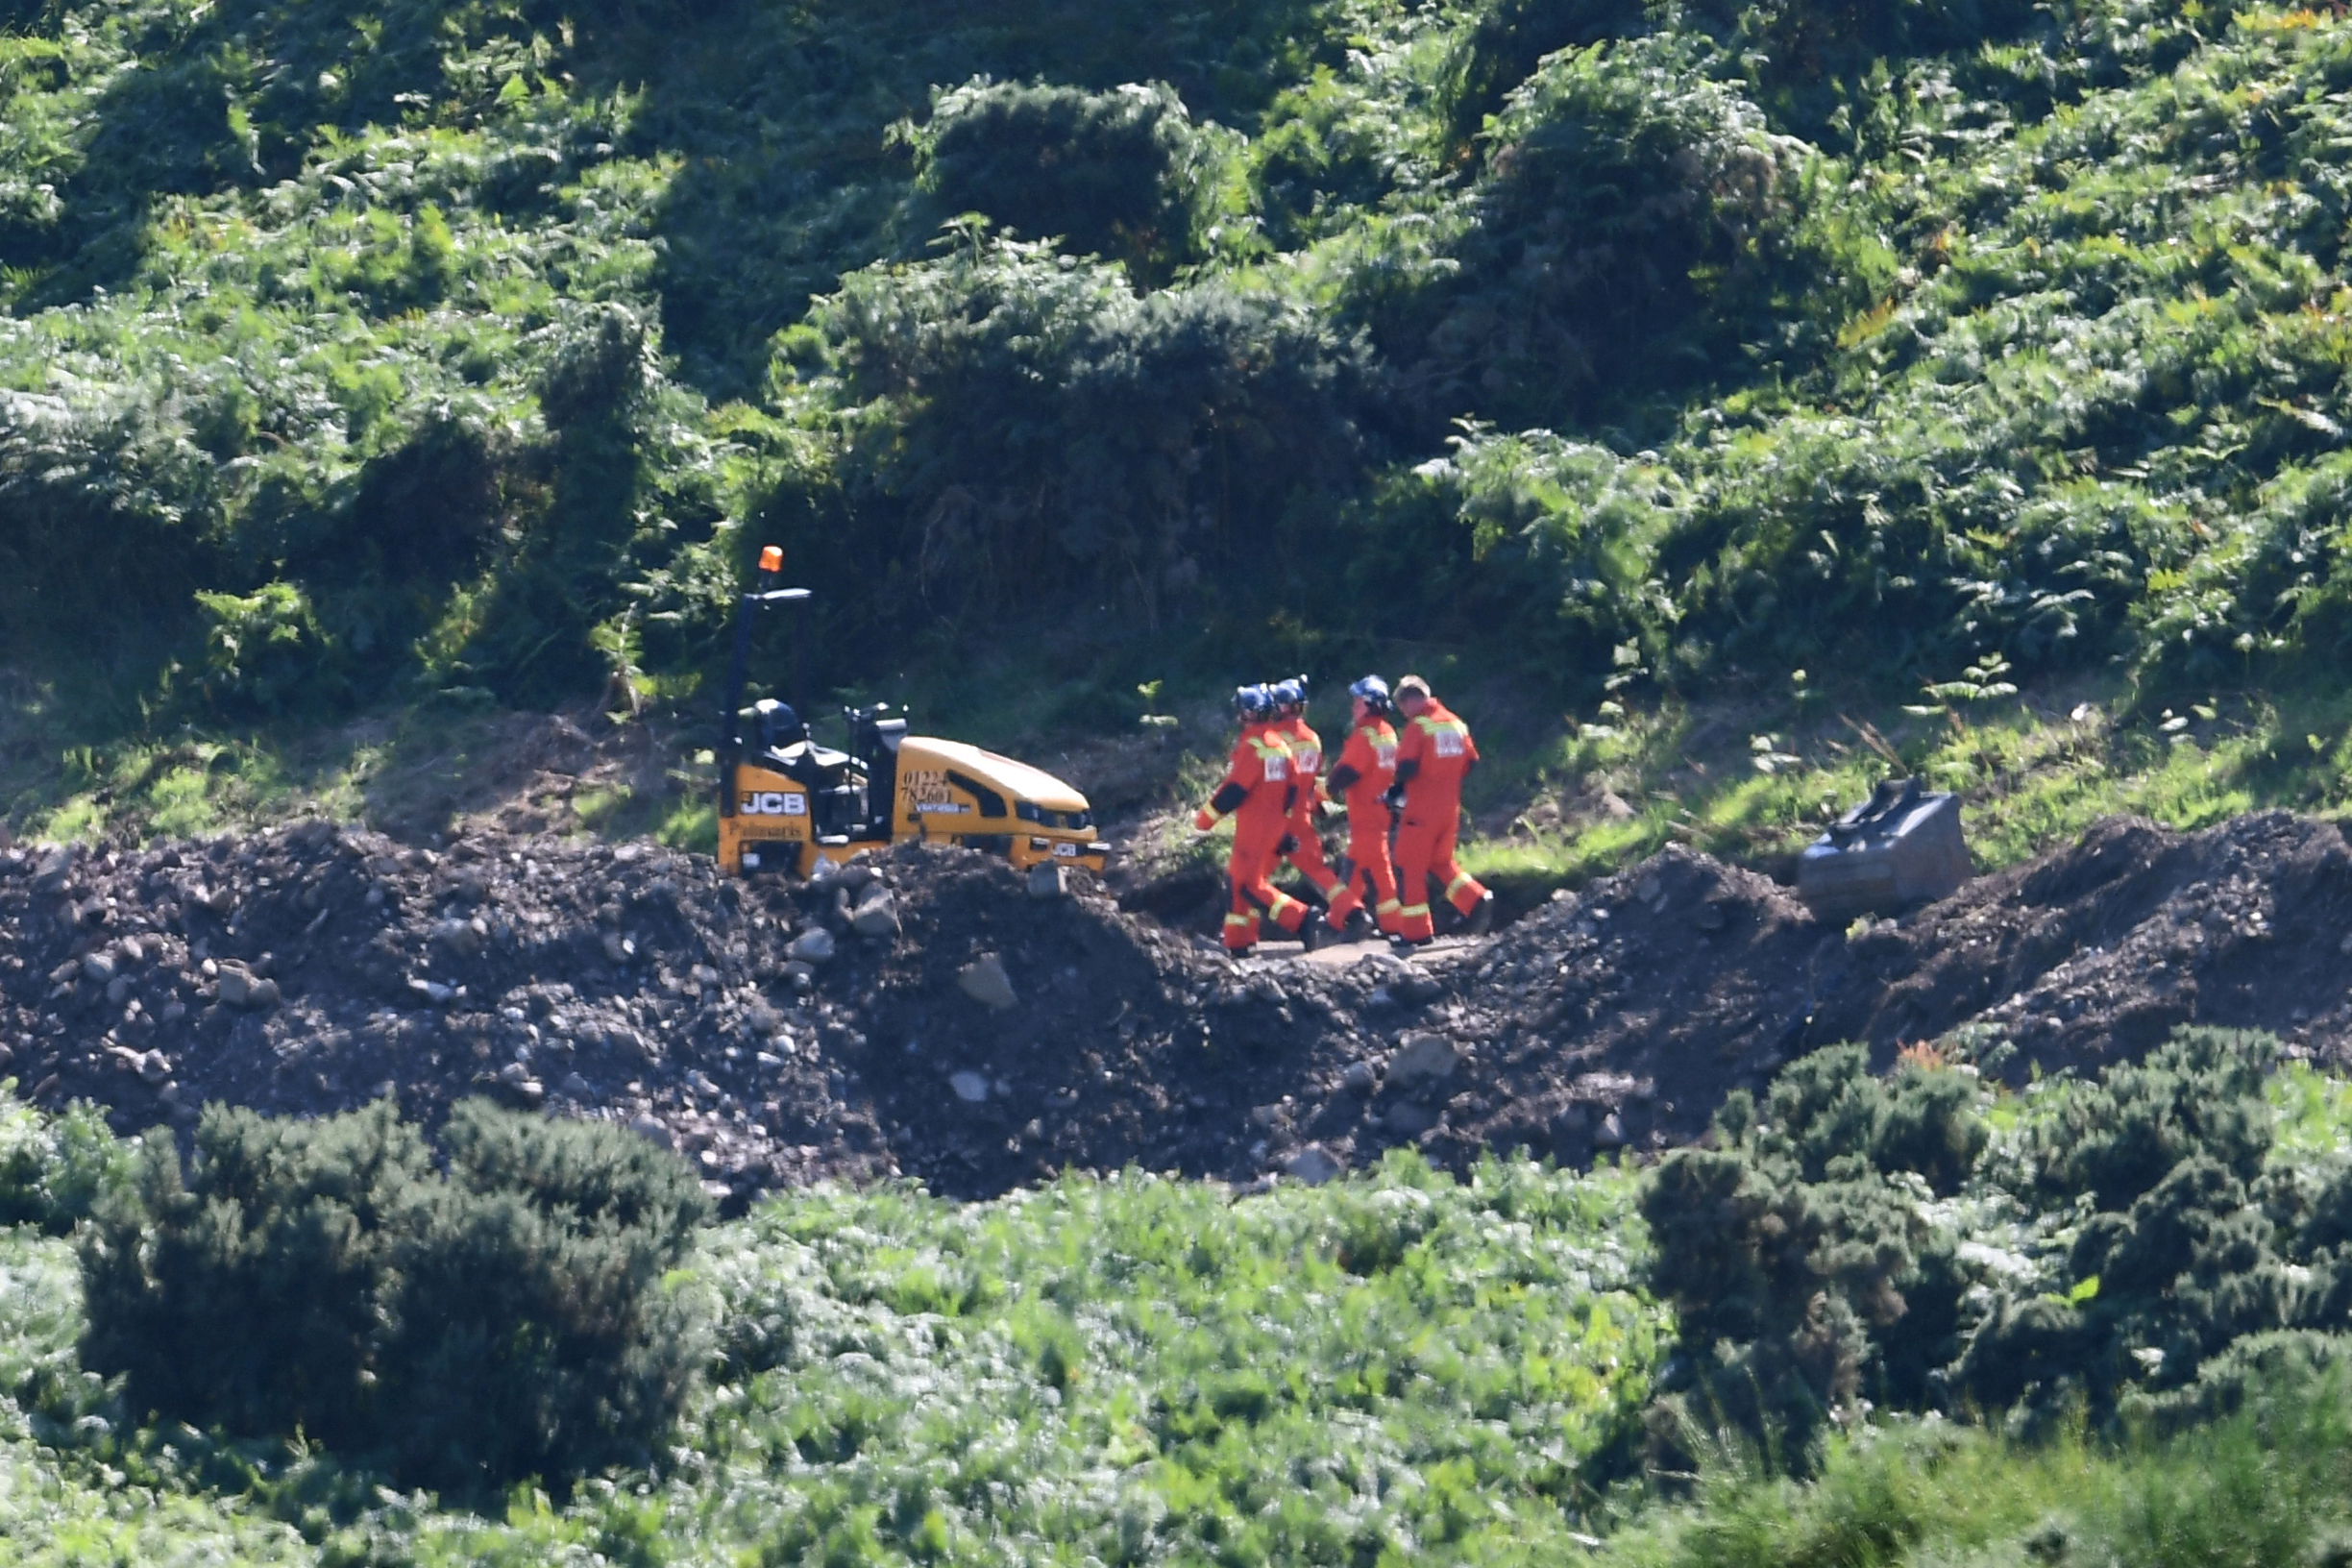 """STONEHAVEN, SCOTLAND - AUGUST 12: Emergency services attend the scene of a train derailment on August 12, 2020 in Stonehaven, Scotland.  Police Scotland said: """"A report was received of a train having derailed near Stonehaven at around 9.45am on Wednesday August 12"""" Emergency services are in attendance. (Photo by Jeff J Mitchell/Getty Images)"""